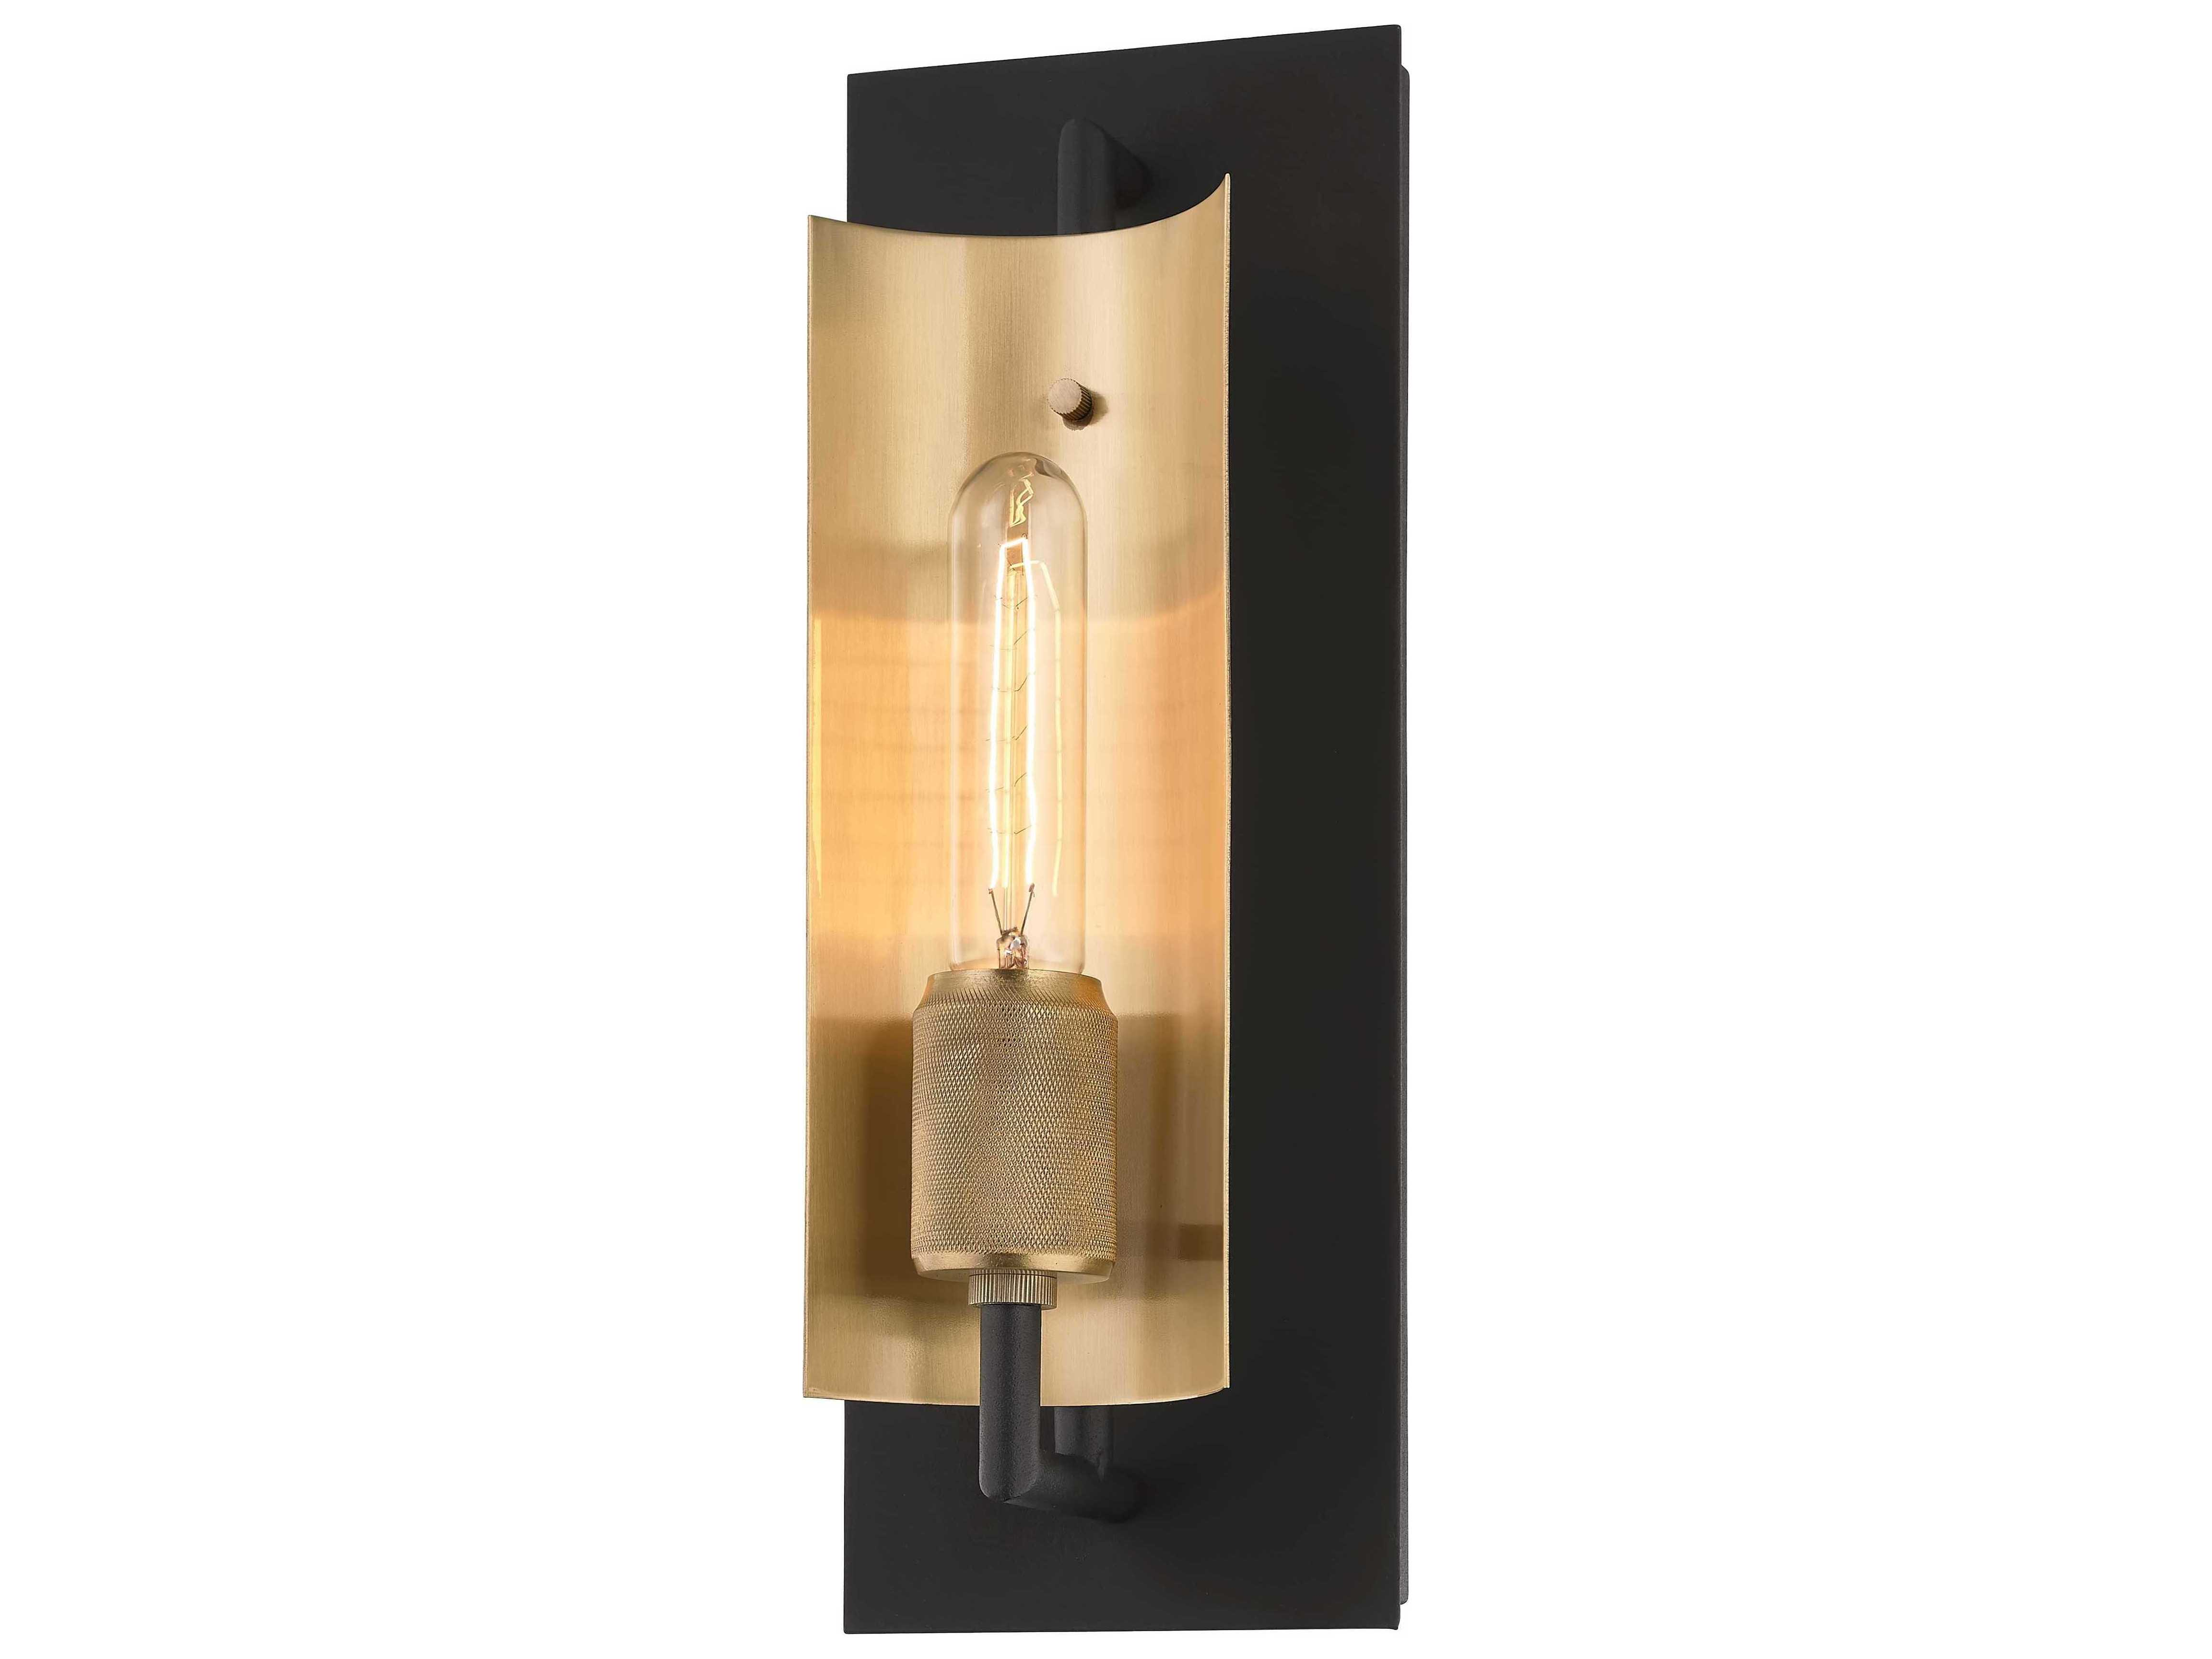 Image of: Troy Lighting Emerson Carbide Black Brushed Brass Wall Sconce B6781